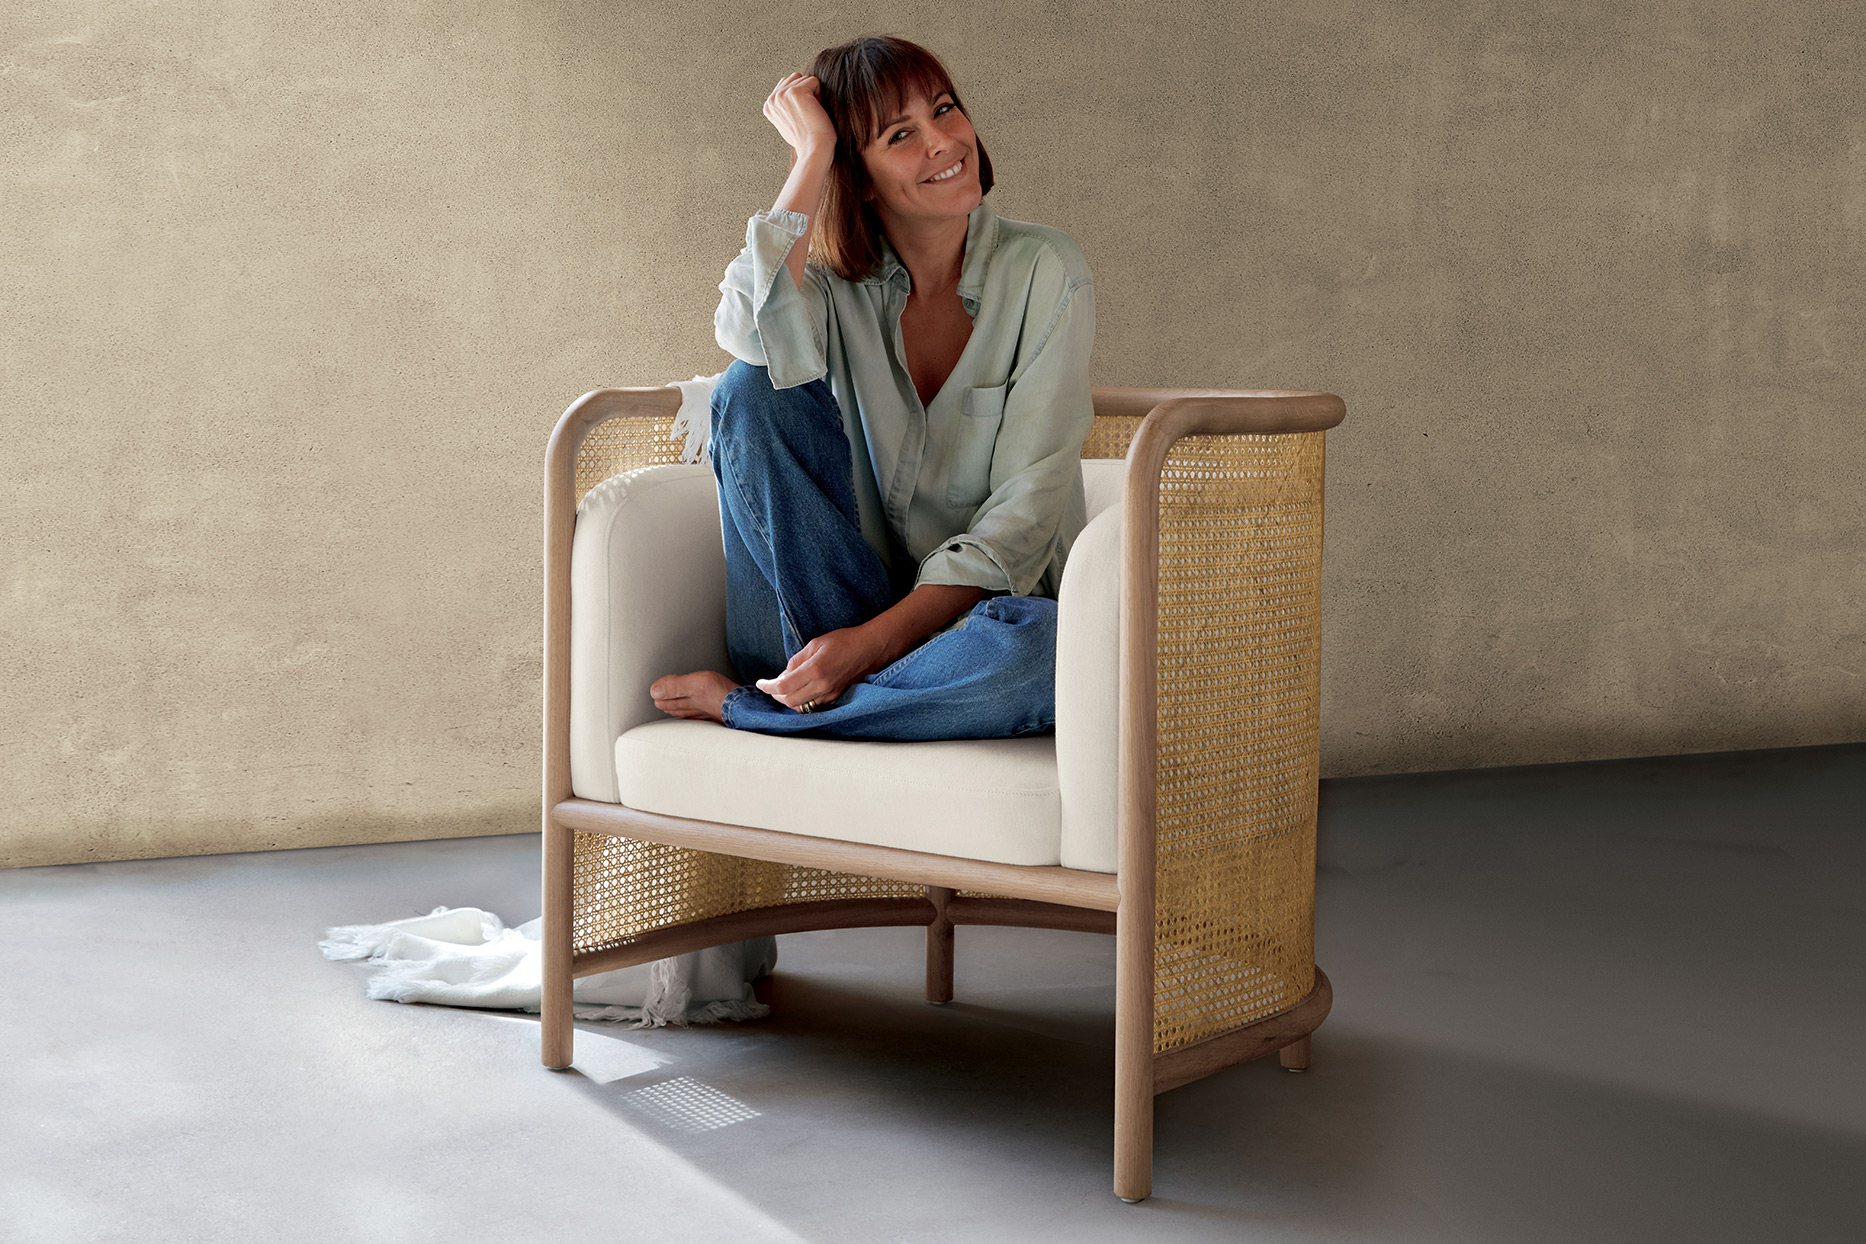 Leanne Ford Crate & Barrel Collection, Leanne on cane chair